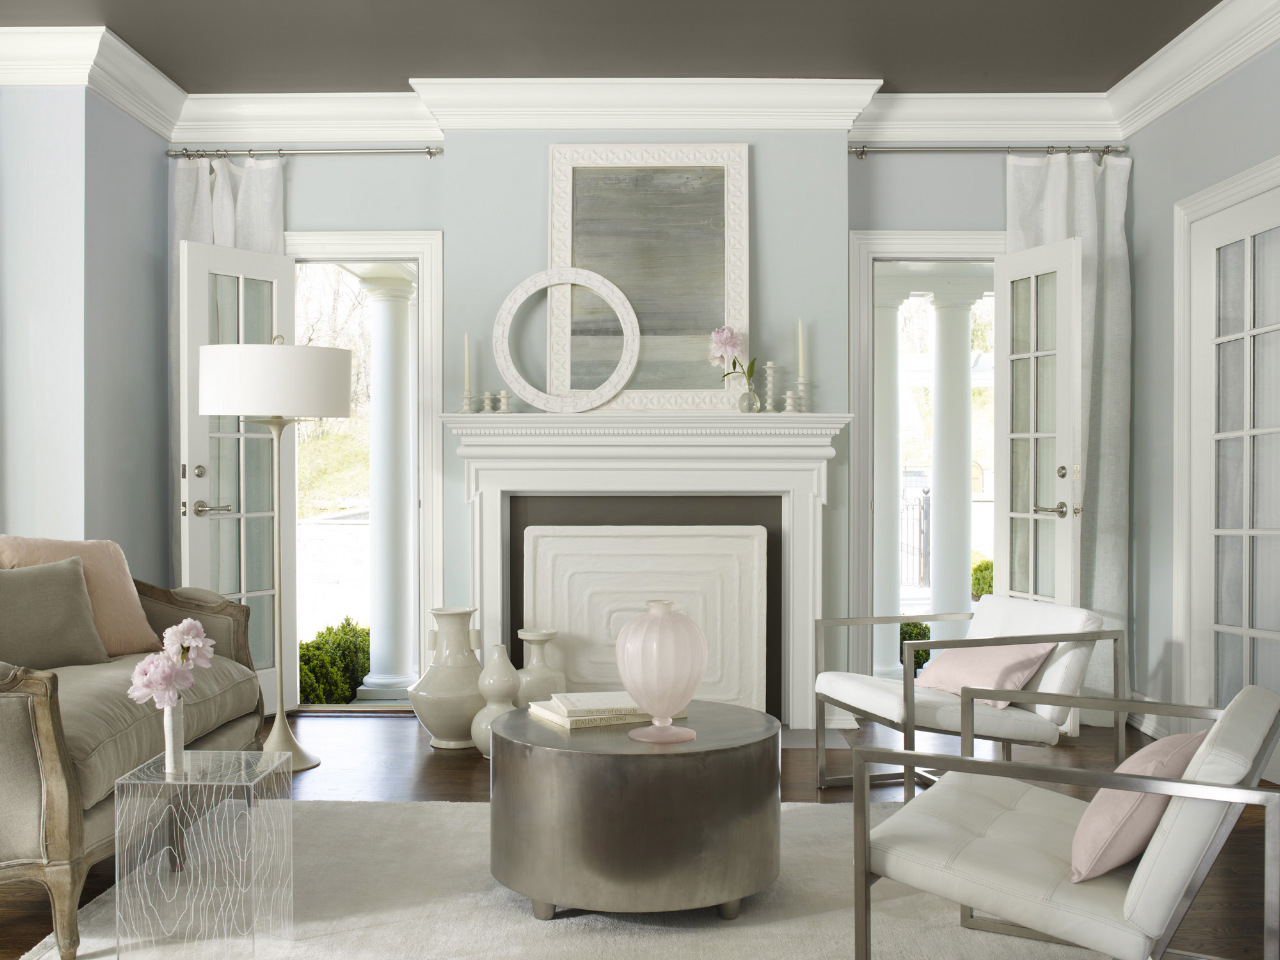 Some Fireplace Decorating Ideas for Making your Room Much More ...